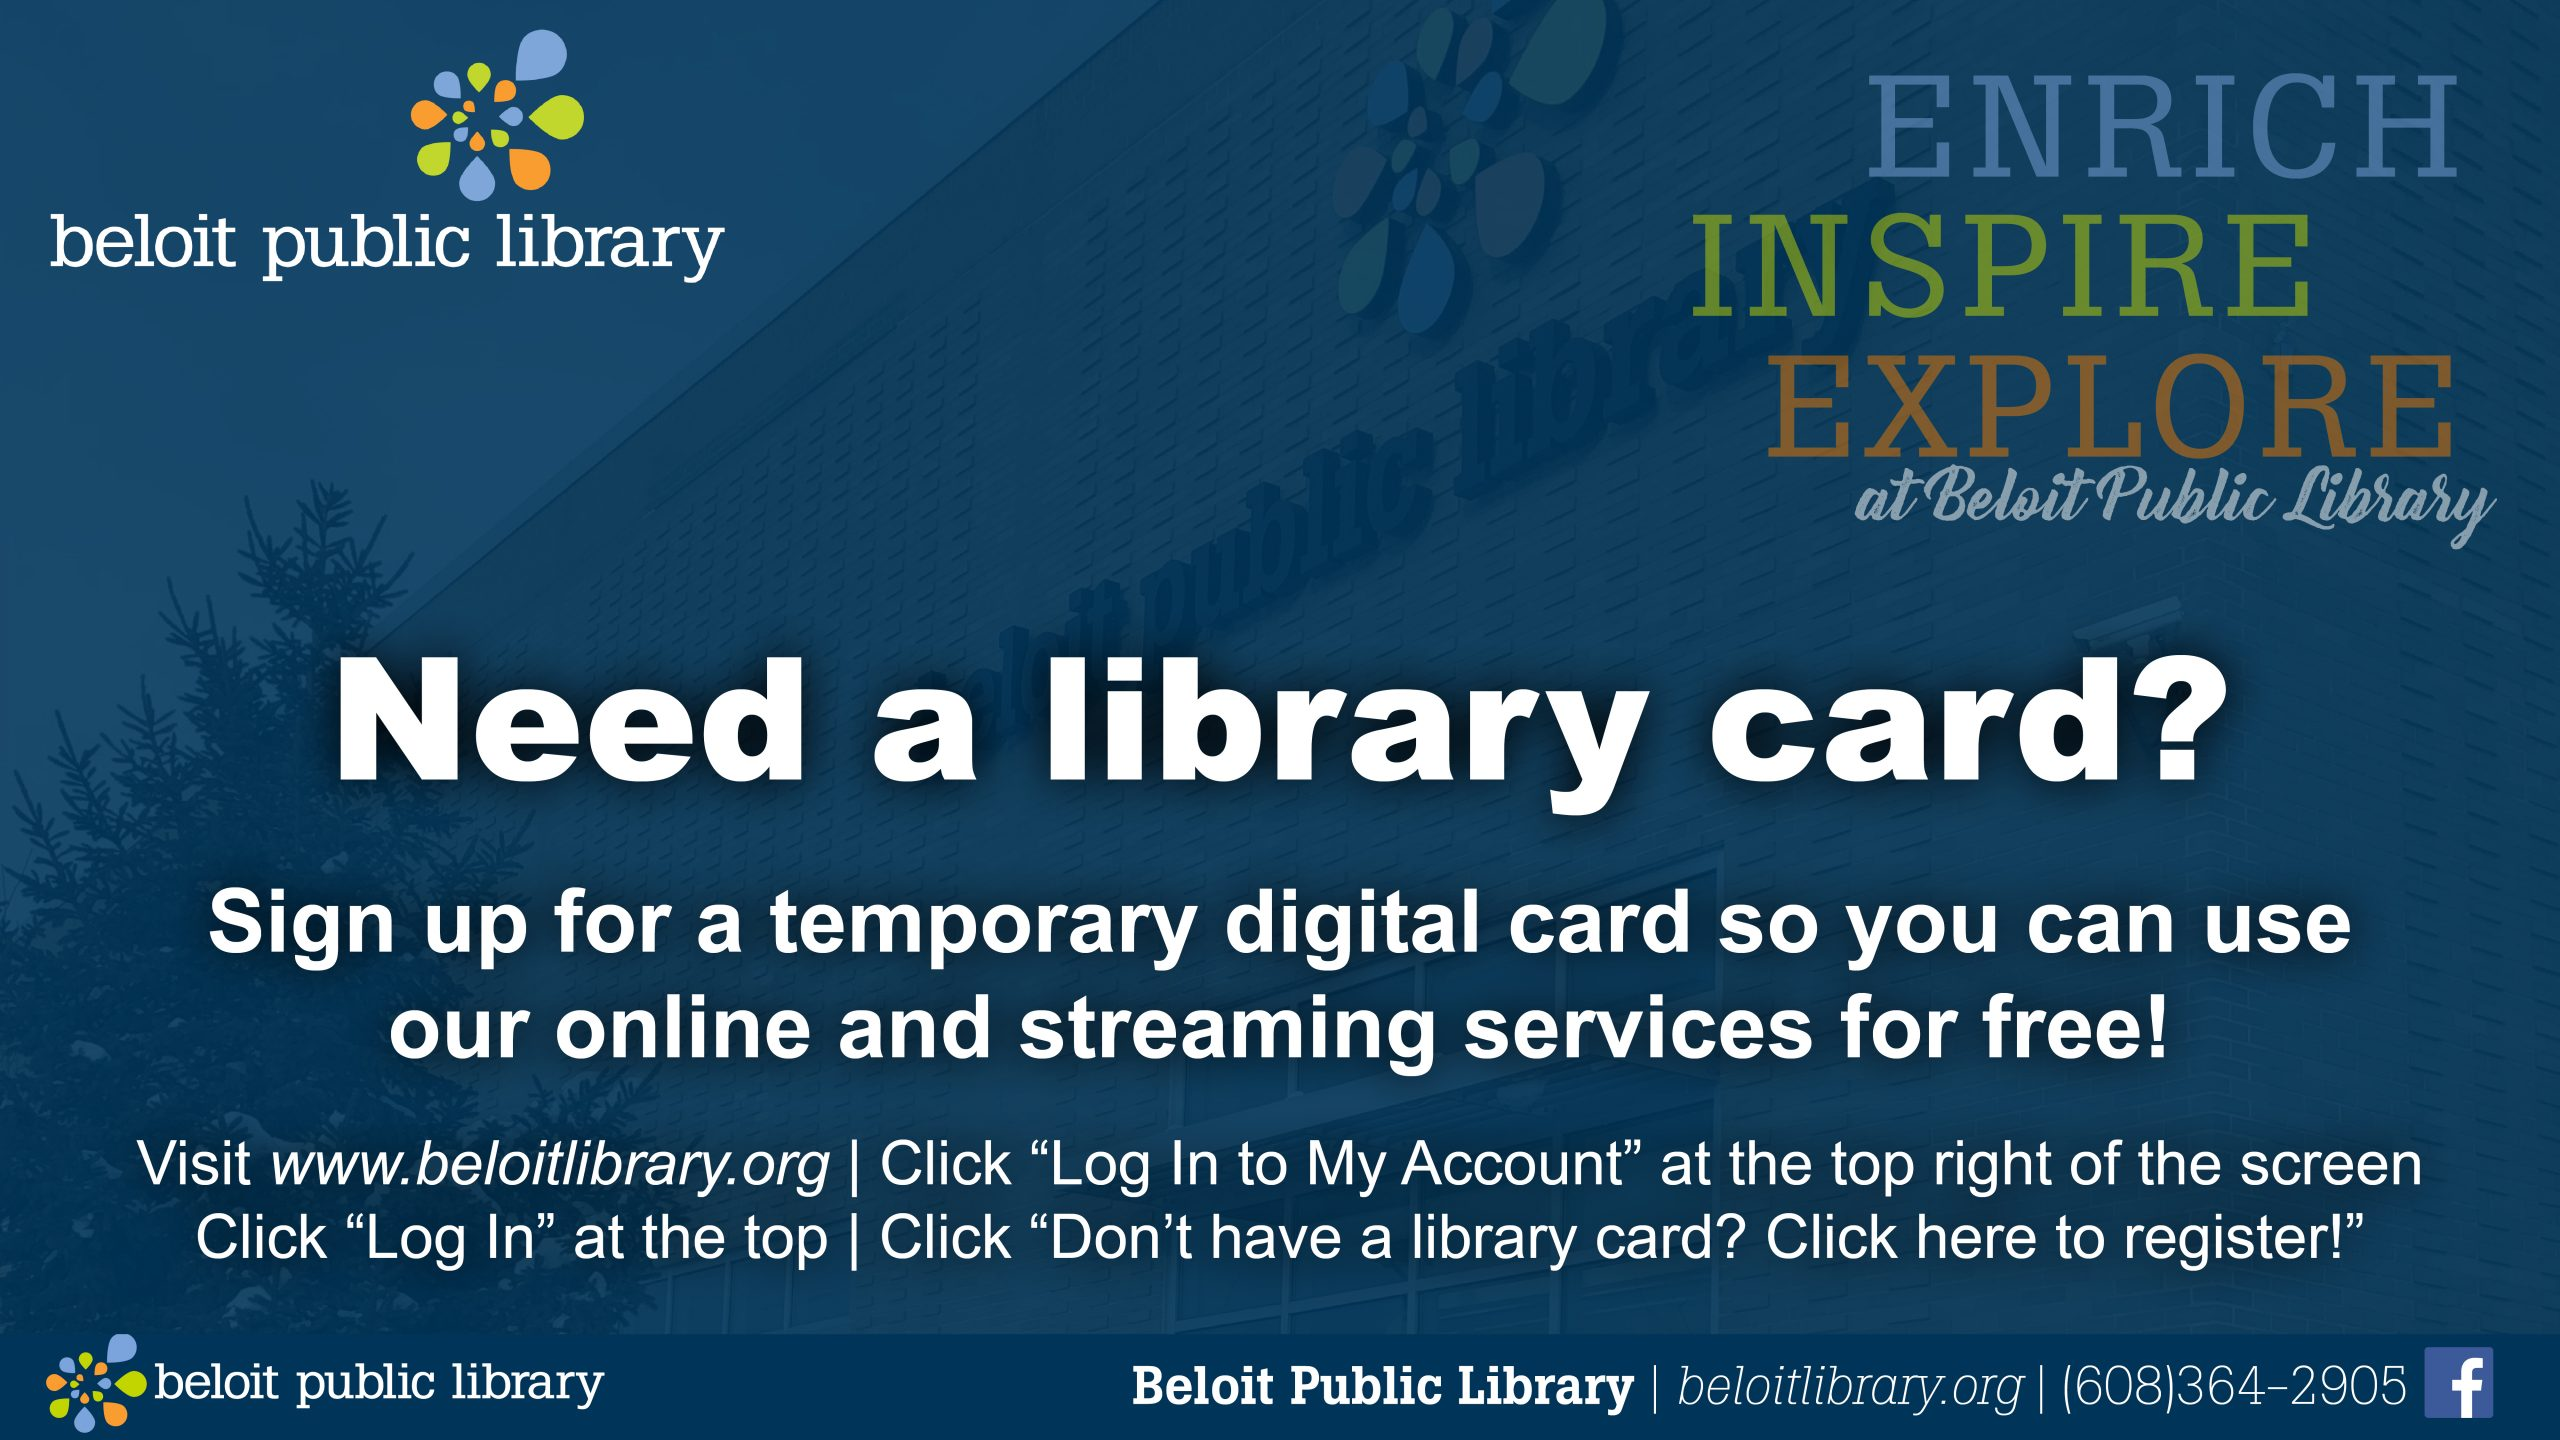 """Need a library card? Sign up for a temporary digital card so you can use our online and streaming services for free! Visit www.beloitlibrary.org 